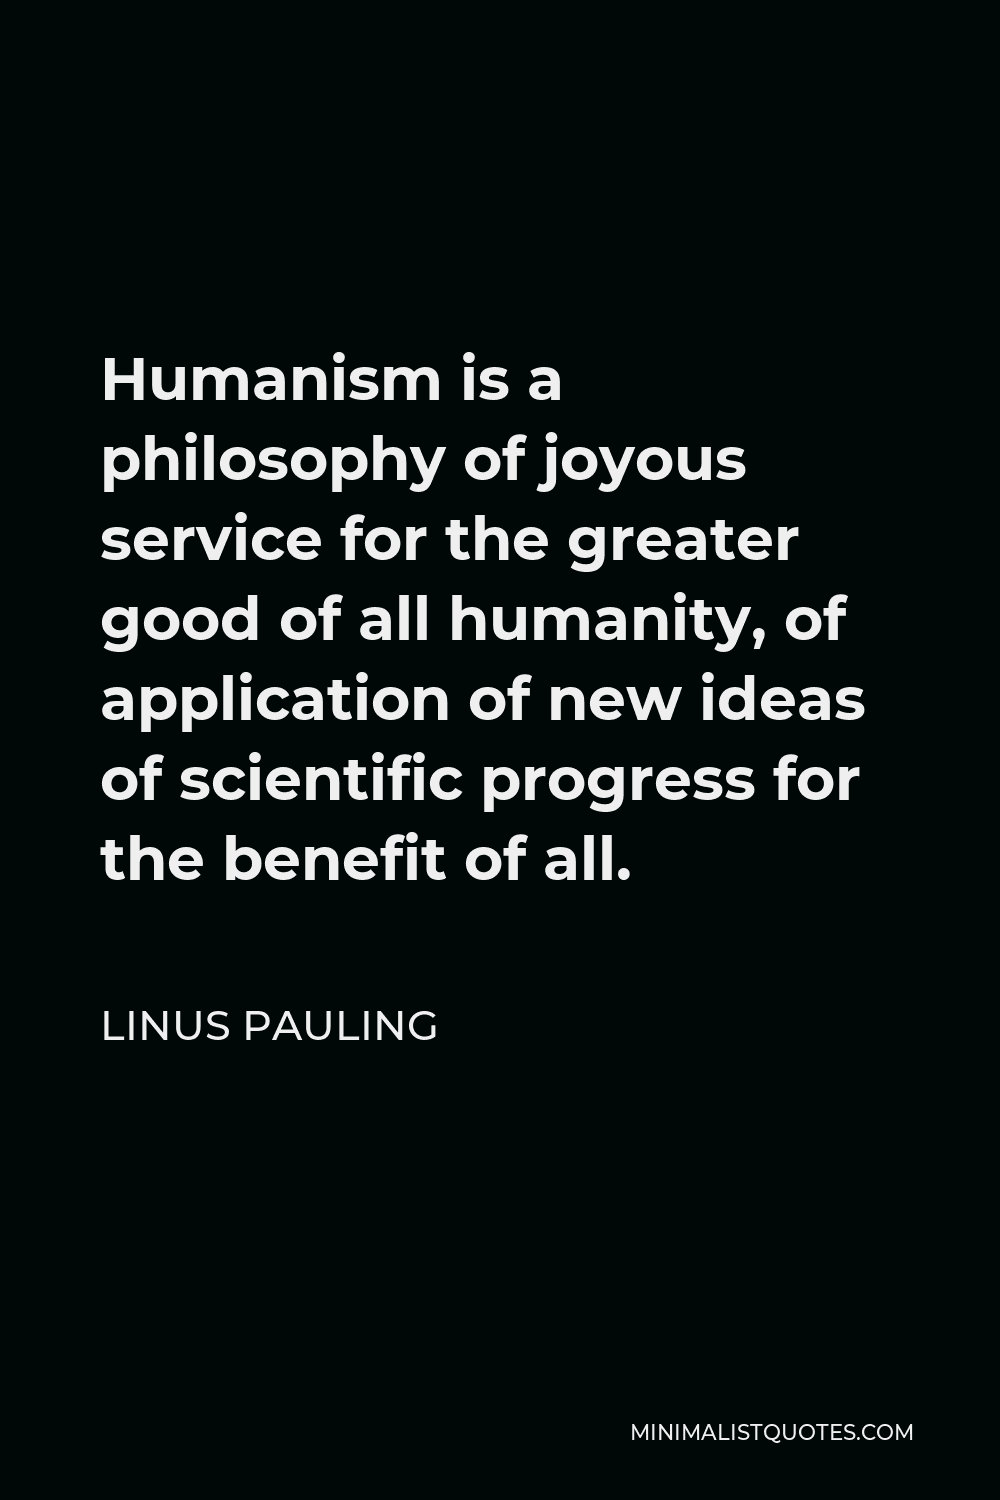 Linus Pauling Quote - Humanism is a philosophy of joyous service for the greater good of all humanity, of application of new ideas of scientific progress for the benefit of all.